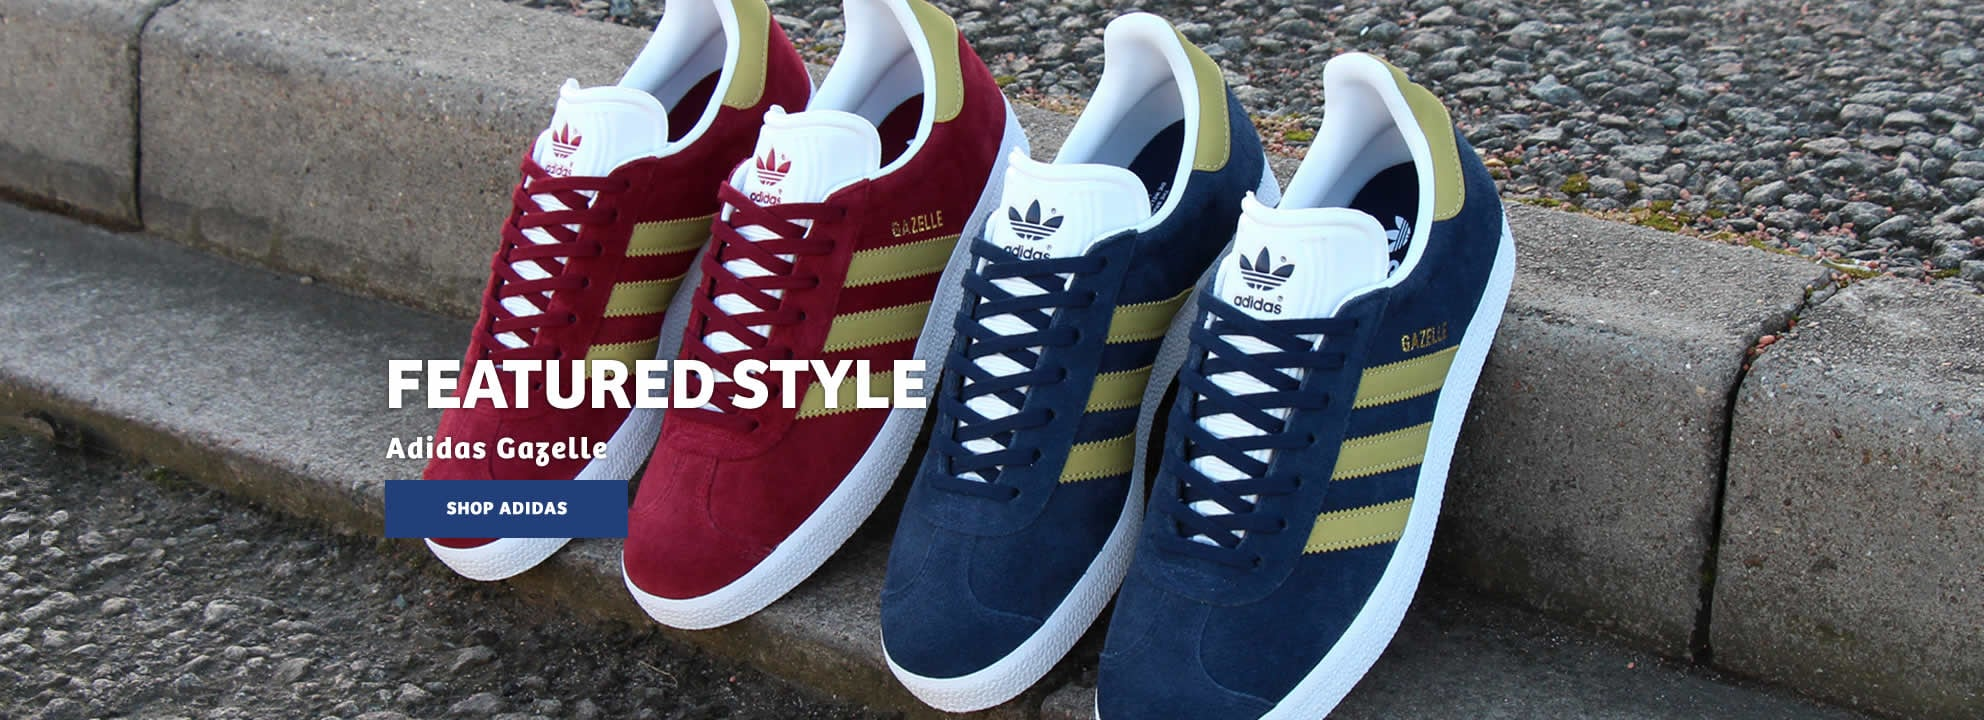 Adidas Gazelles New